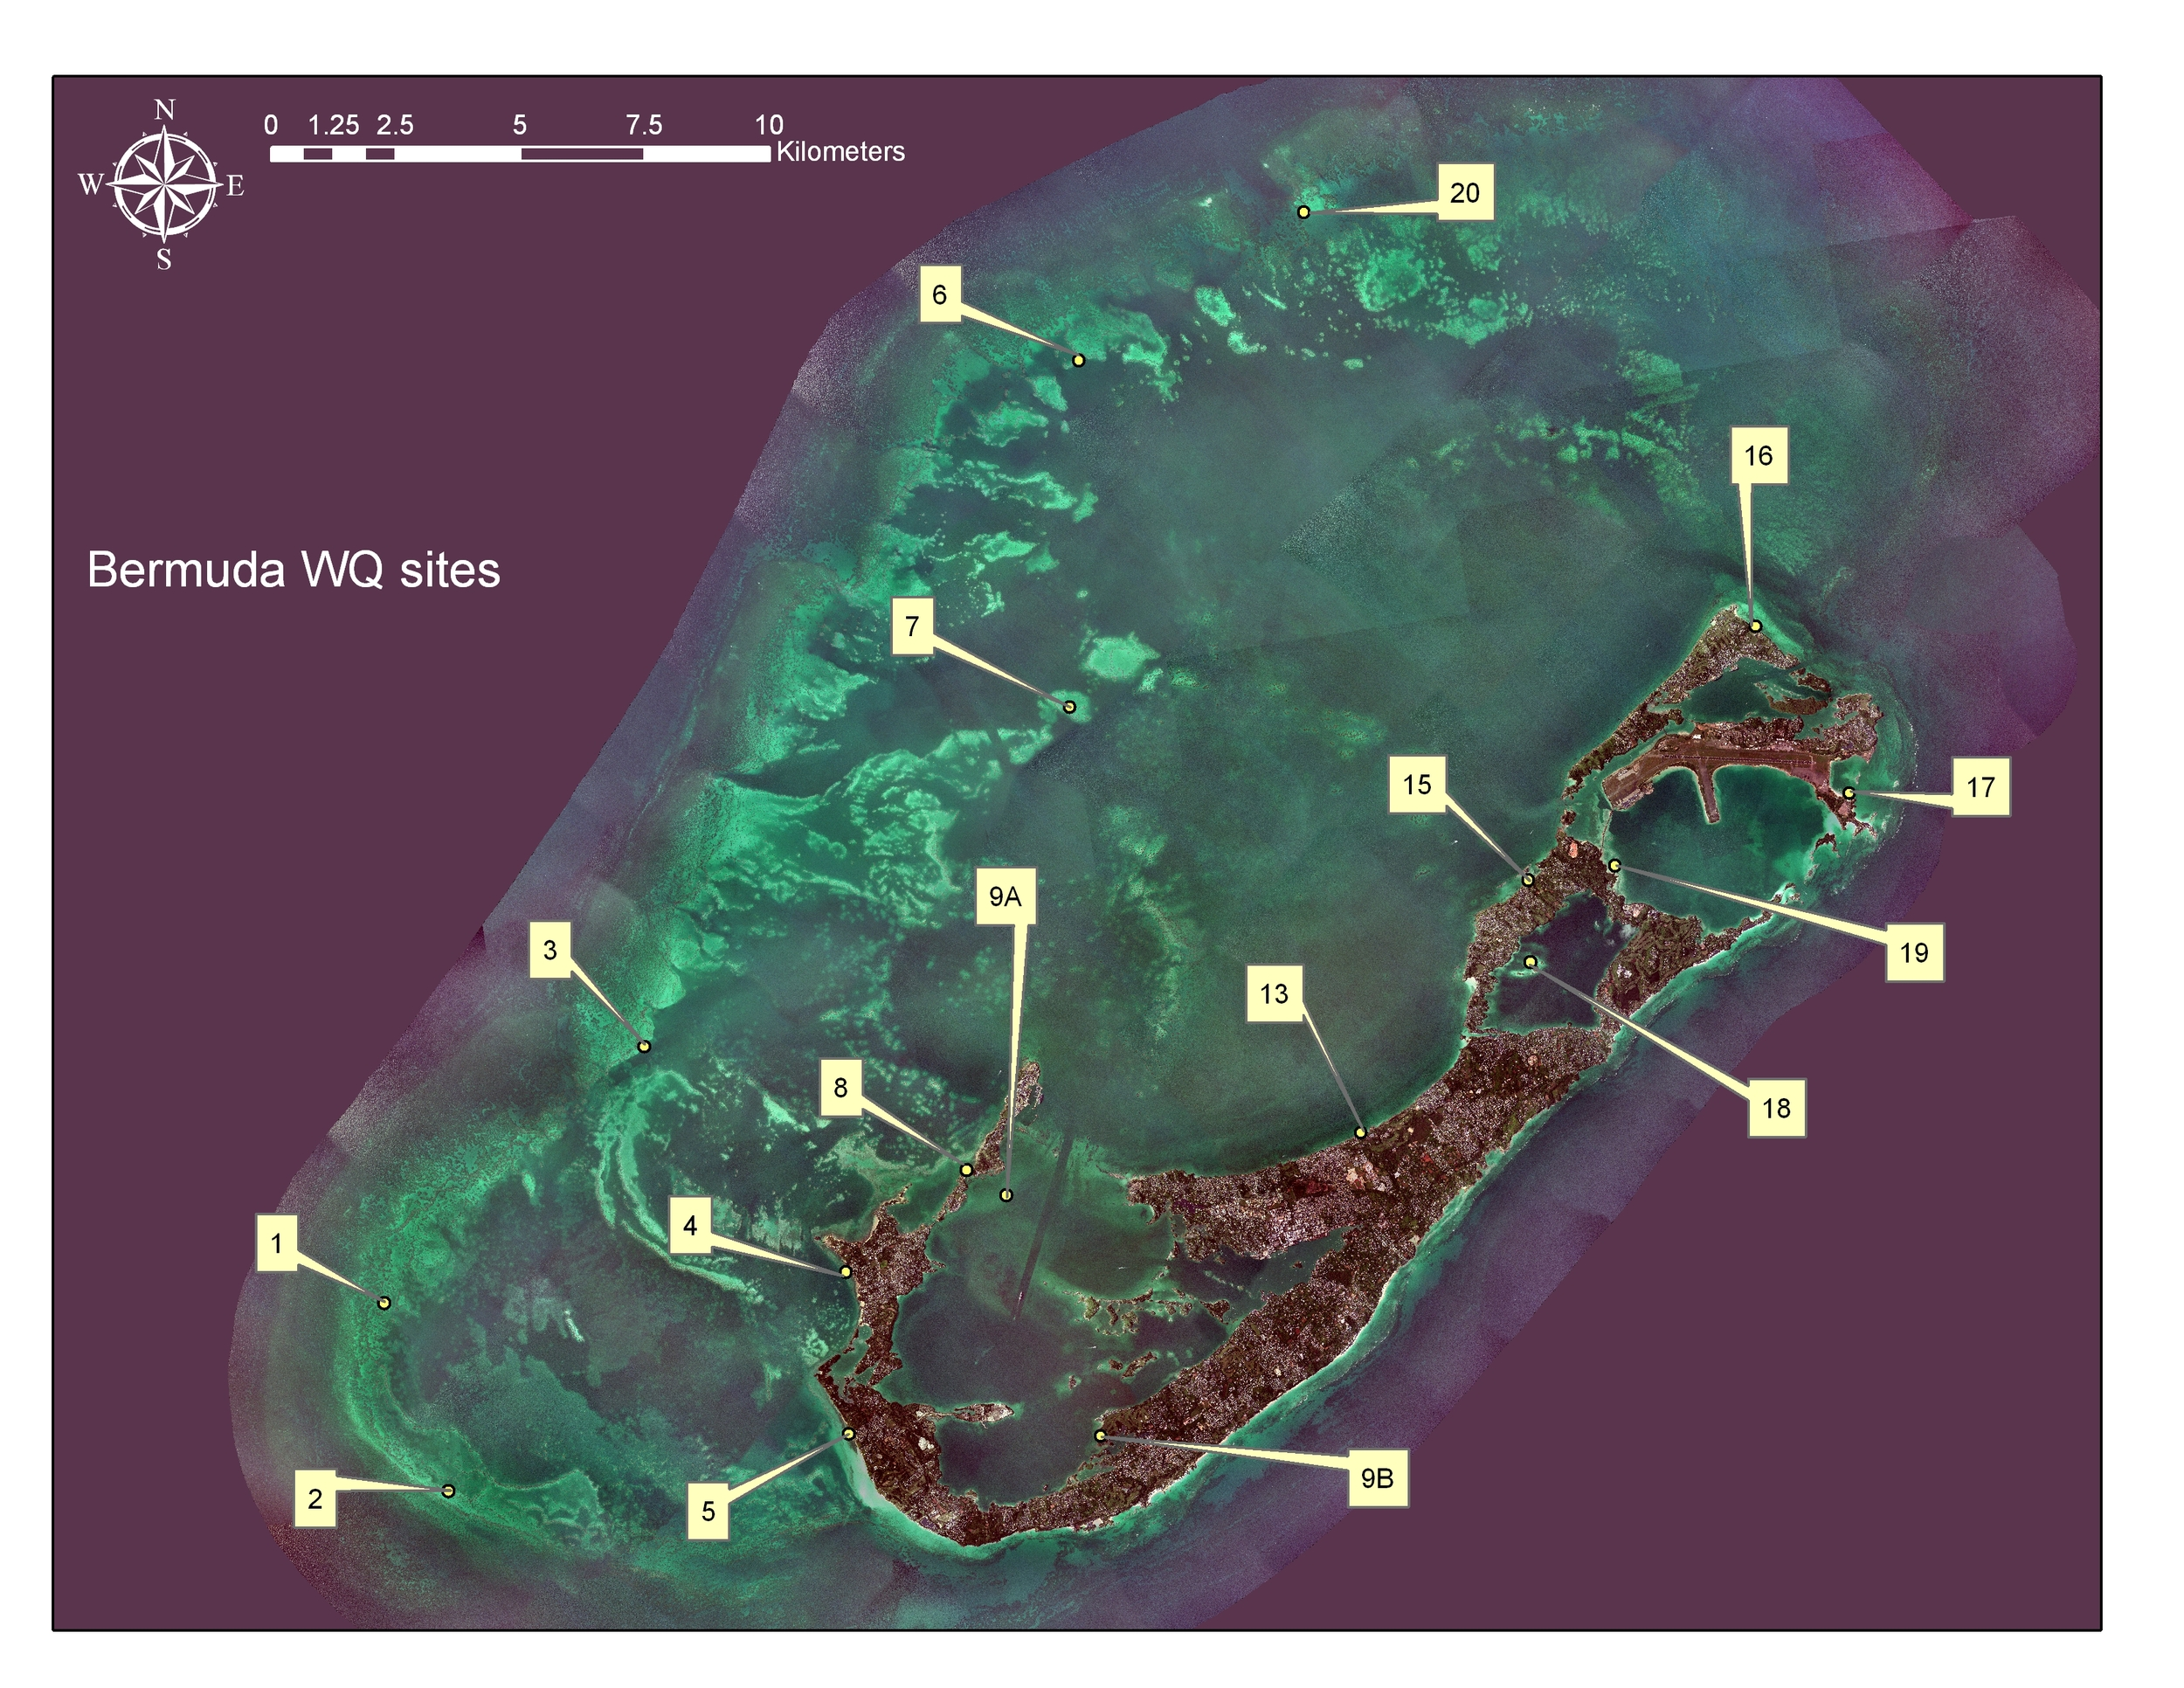 Water quality and seagrass monitoring sites